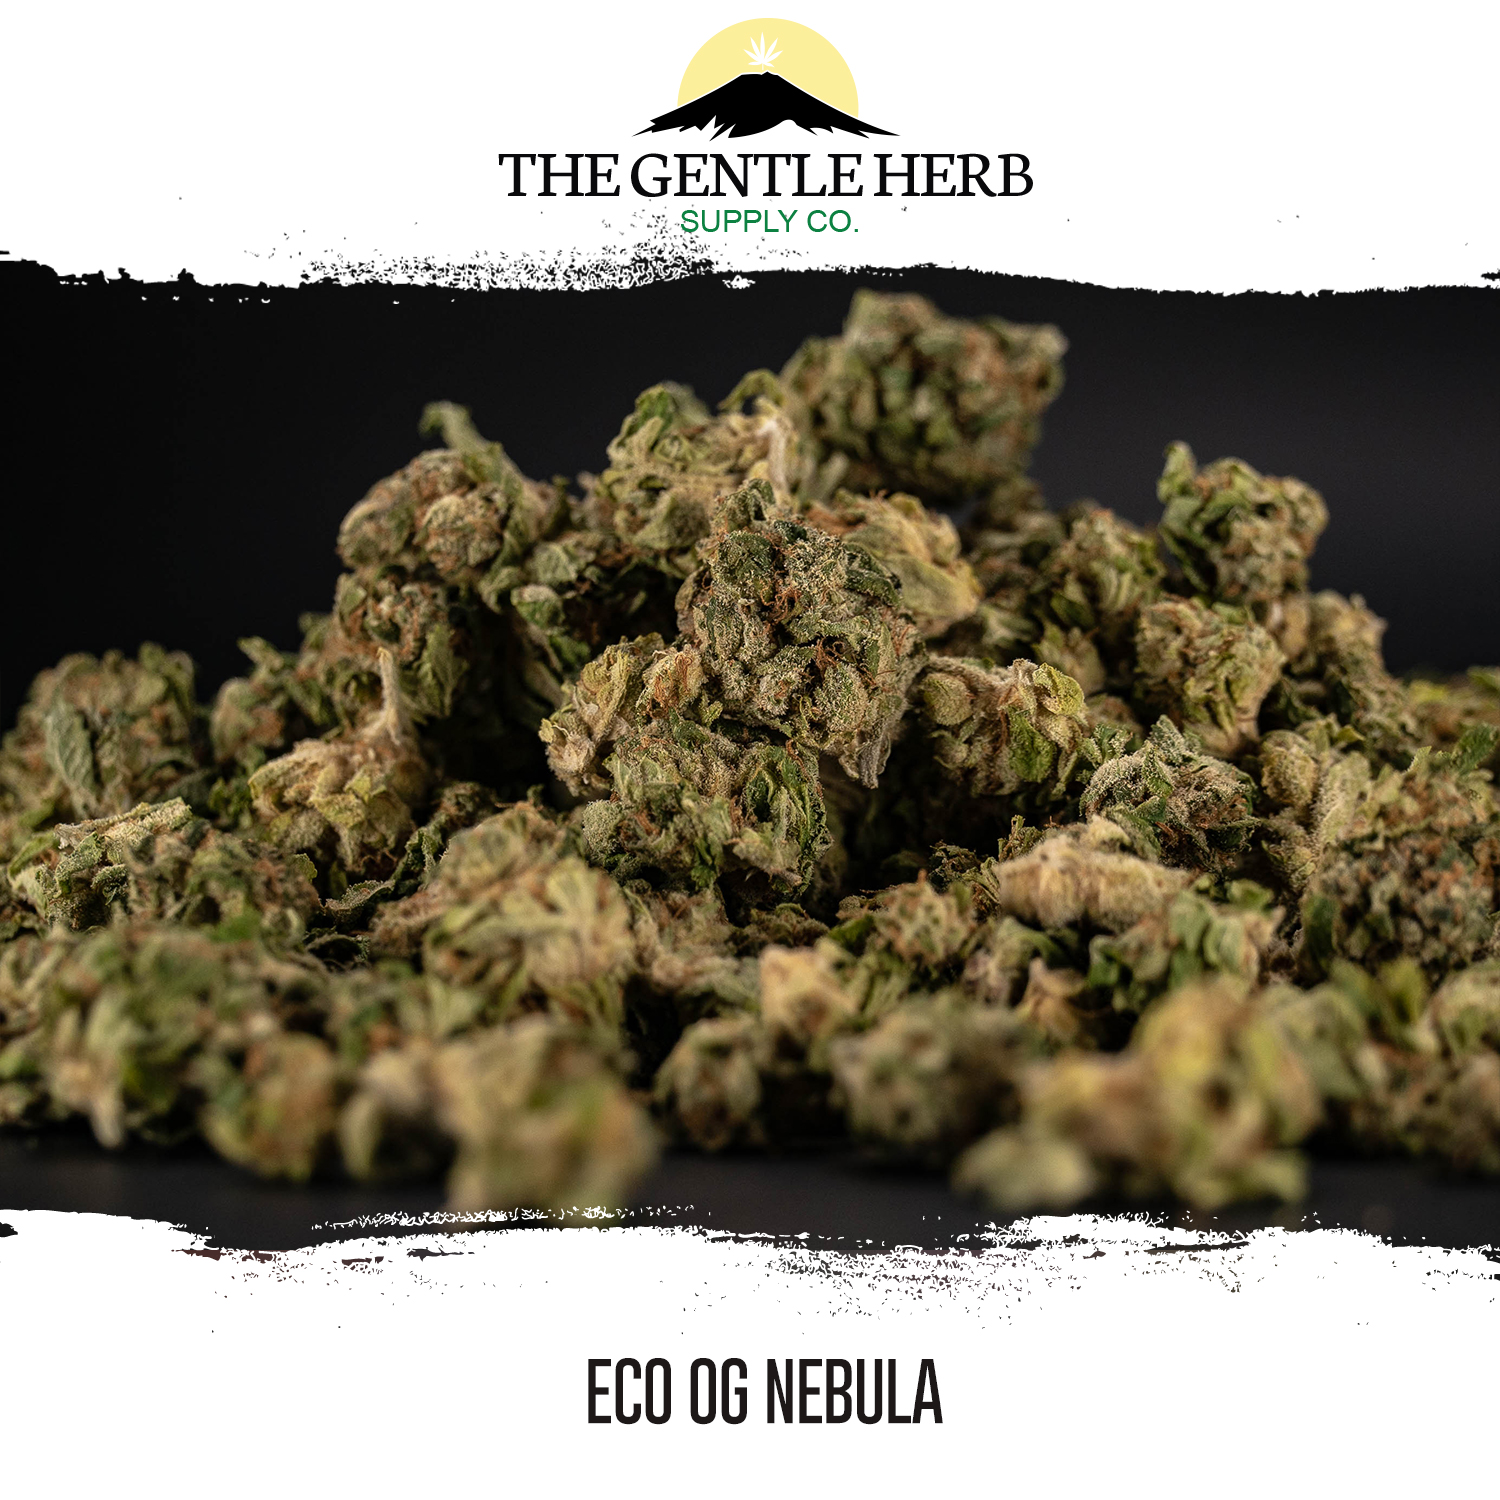 Eco OG Nebula 28g by The Gentle Herb - Image © 2018 The Gentle Herb. All Rights Reserved.